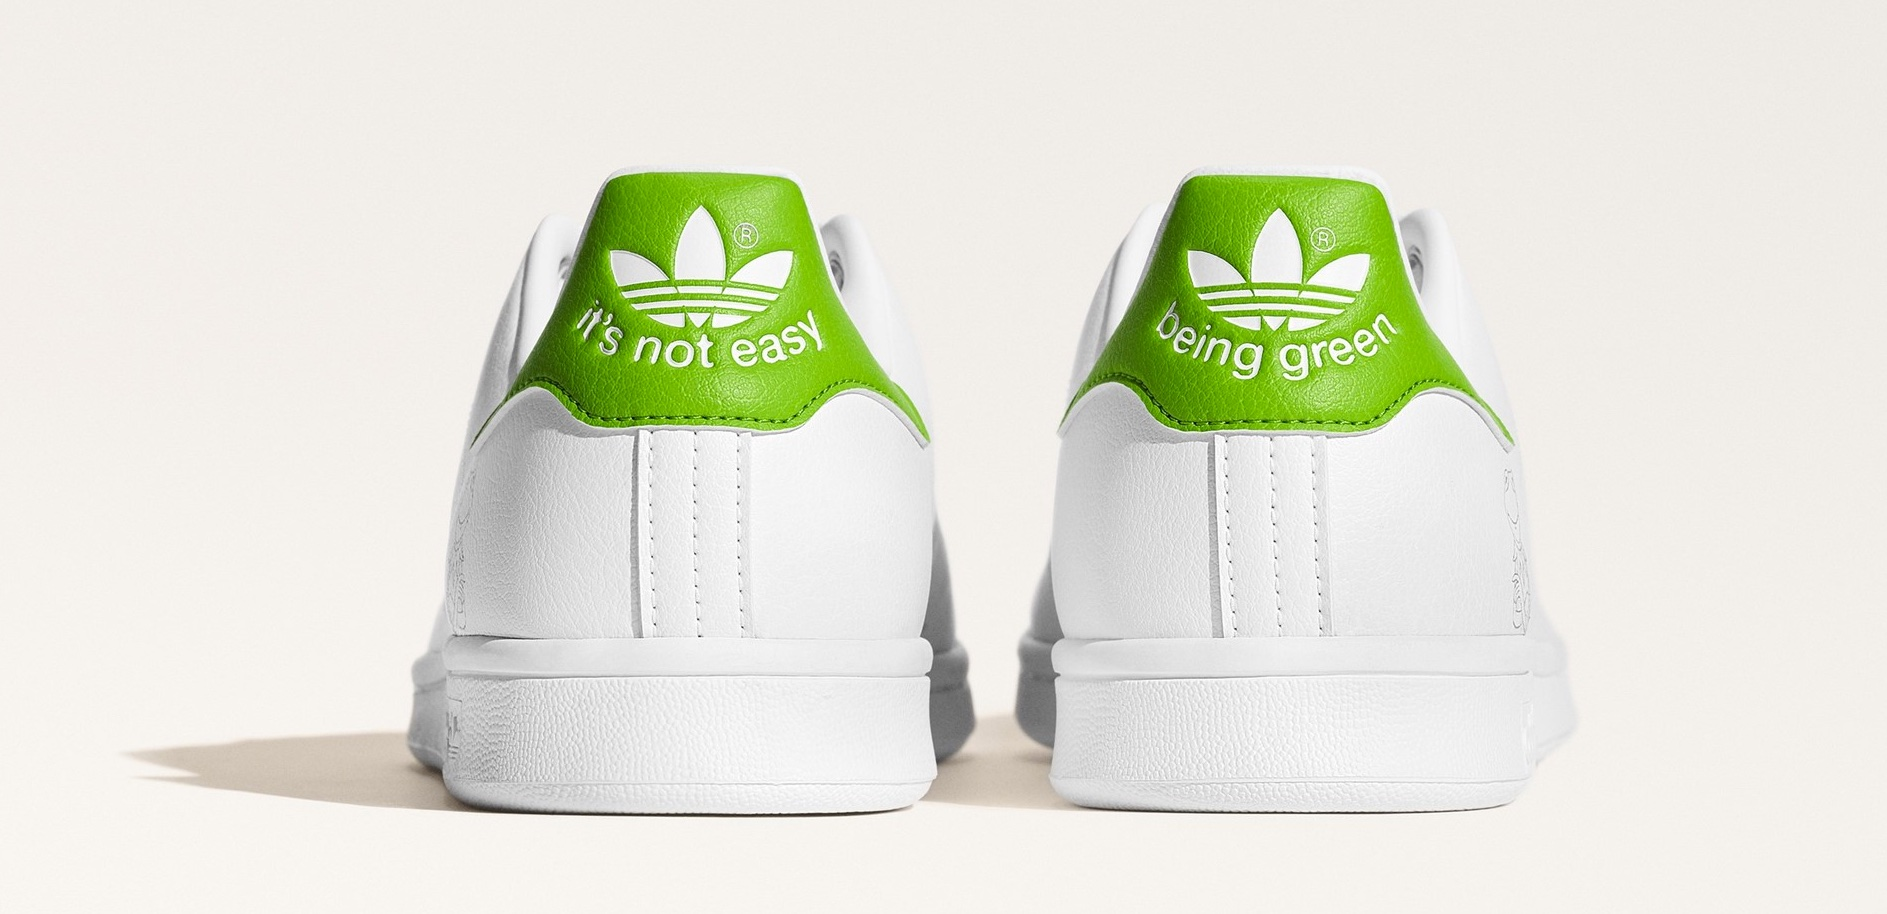 adidas celebrates its Stan Smith collection with new styles - 9to5Toys